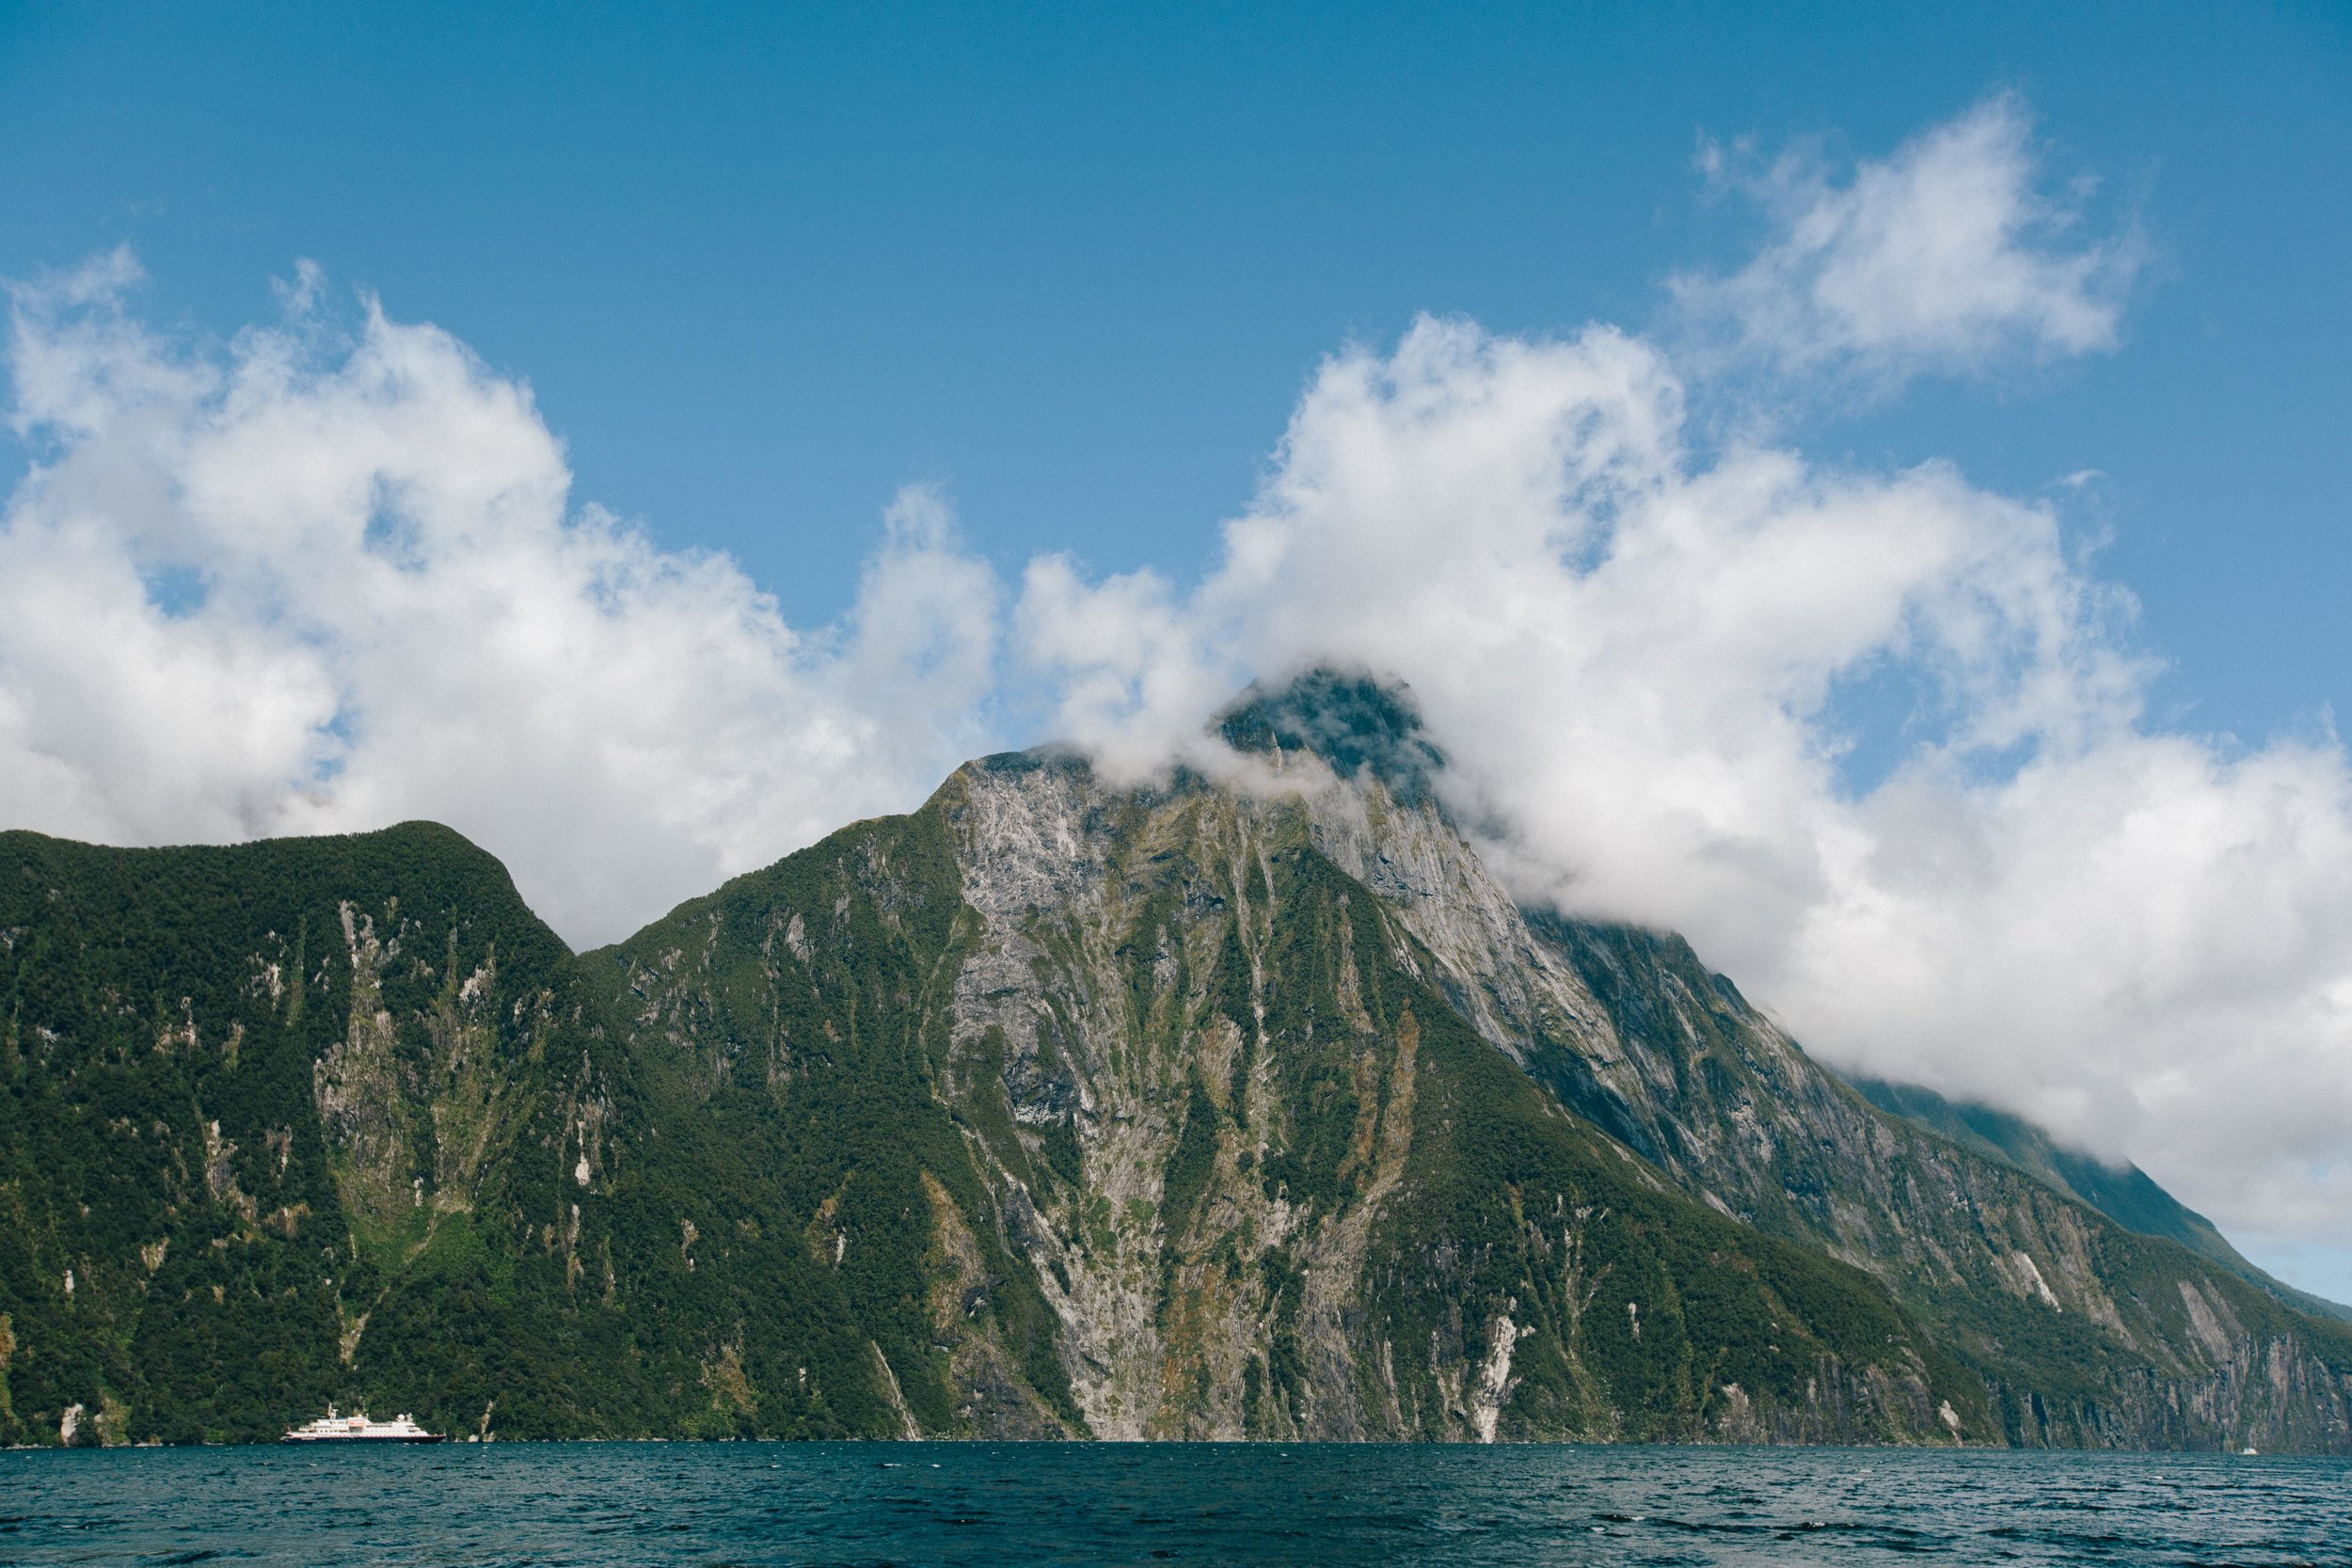 Boat-Milford Sound-New Zealand-.jpg